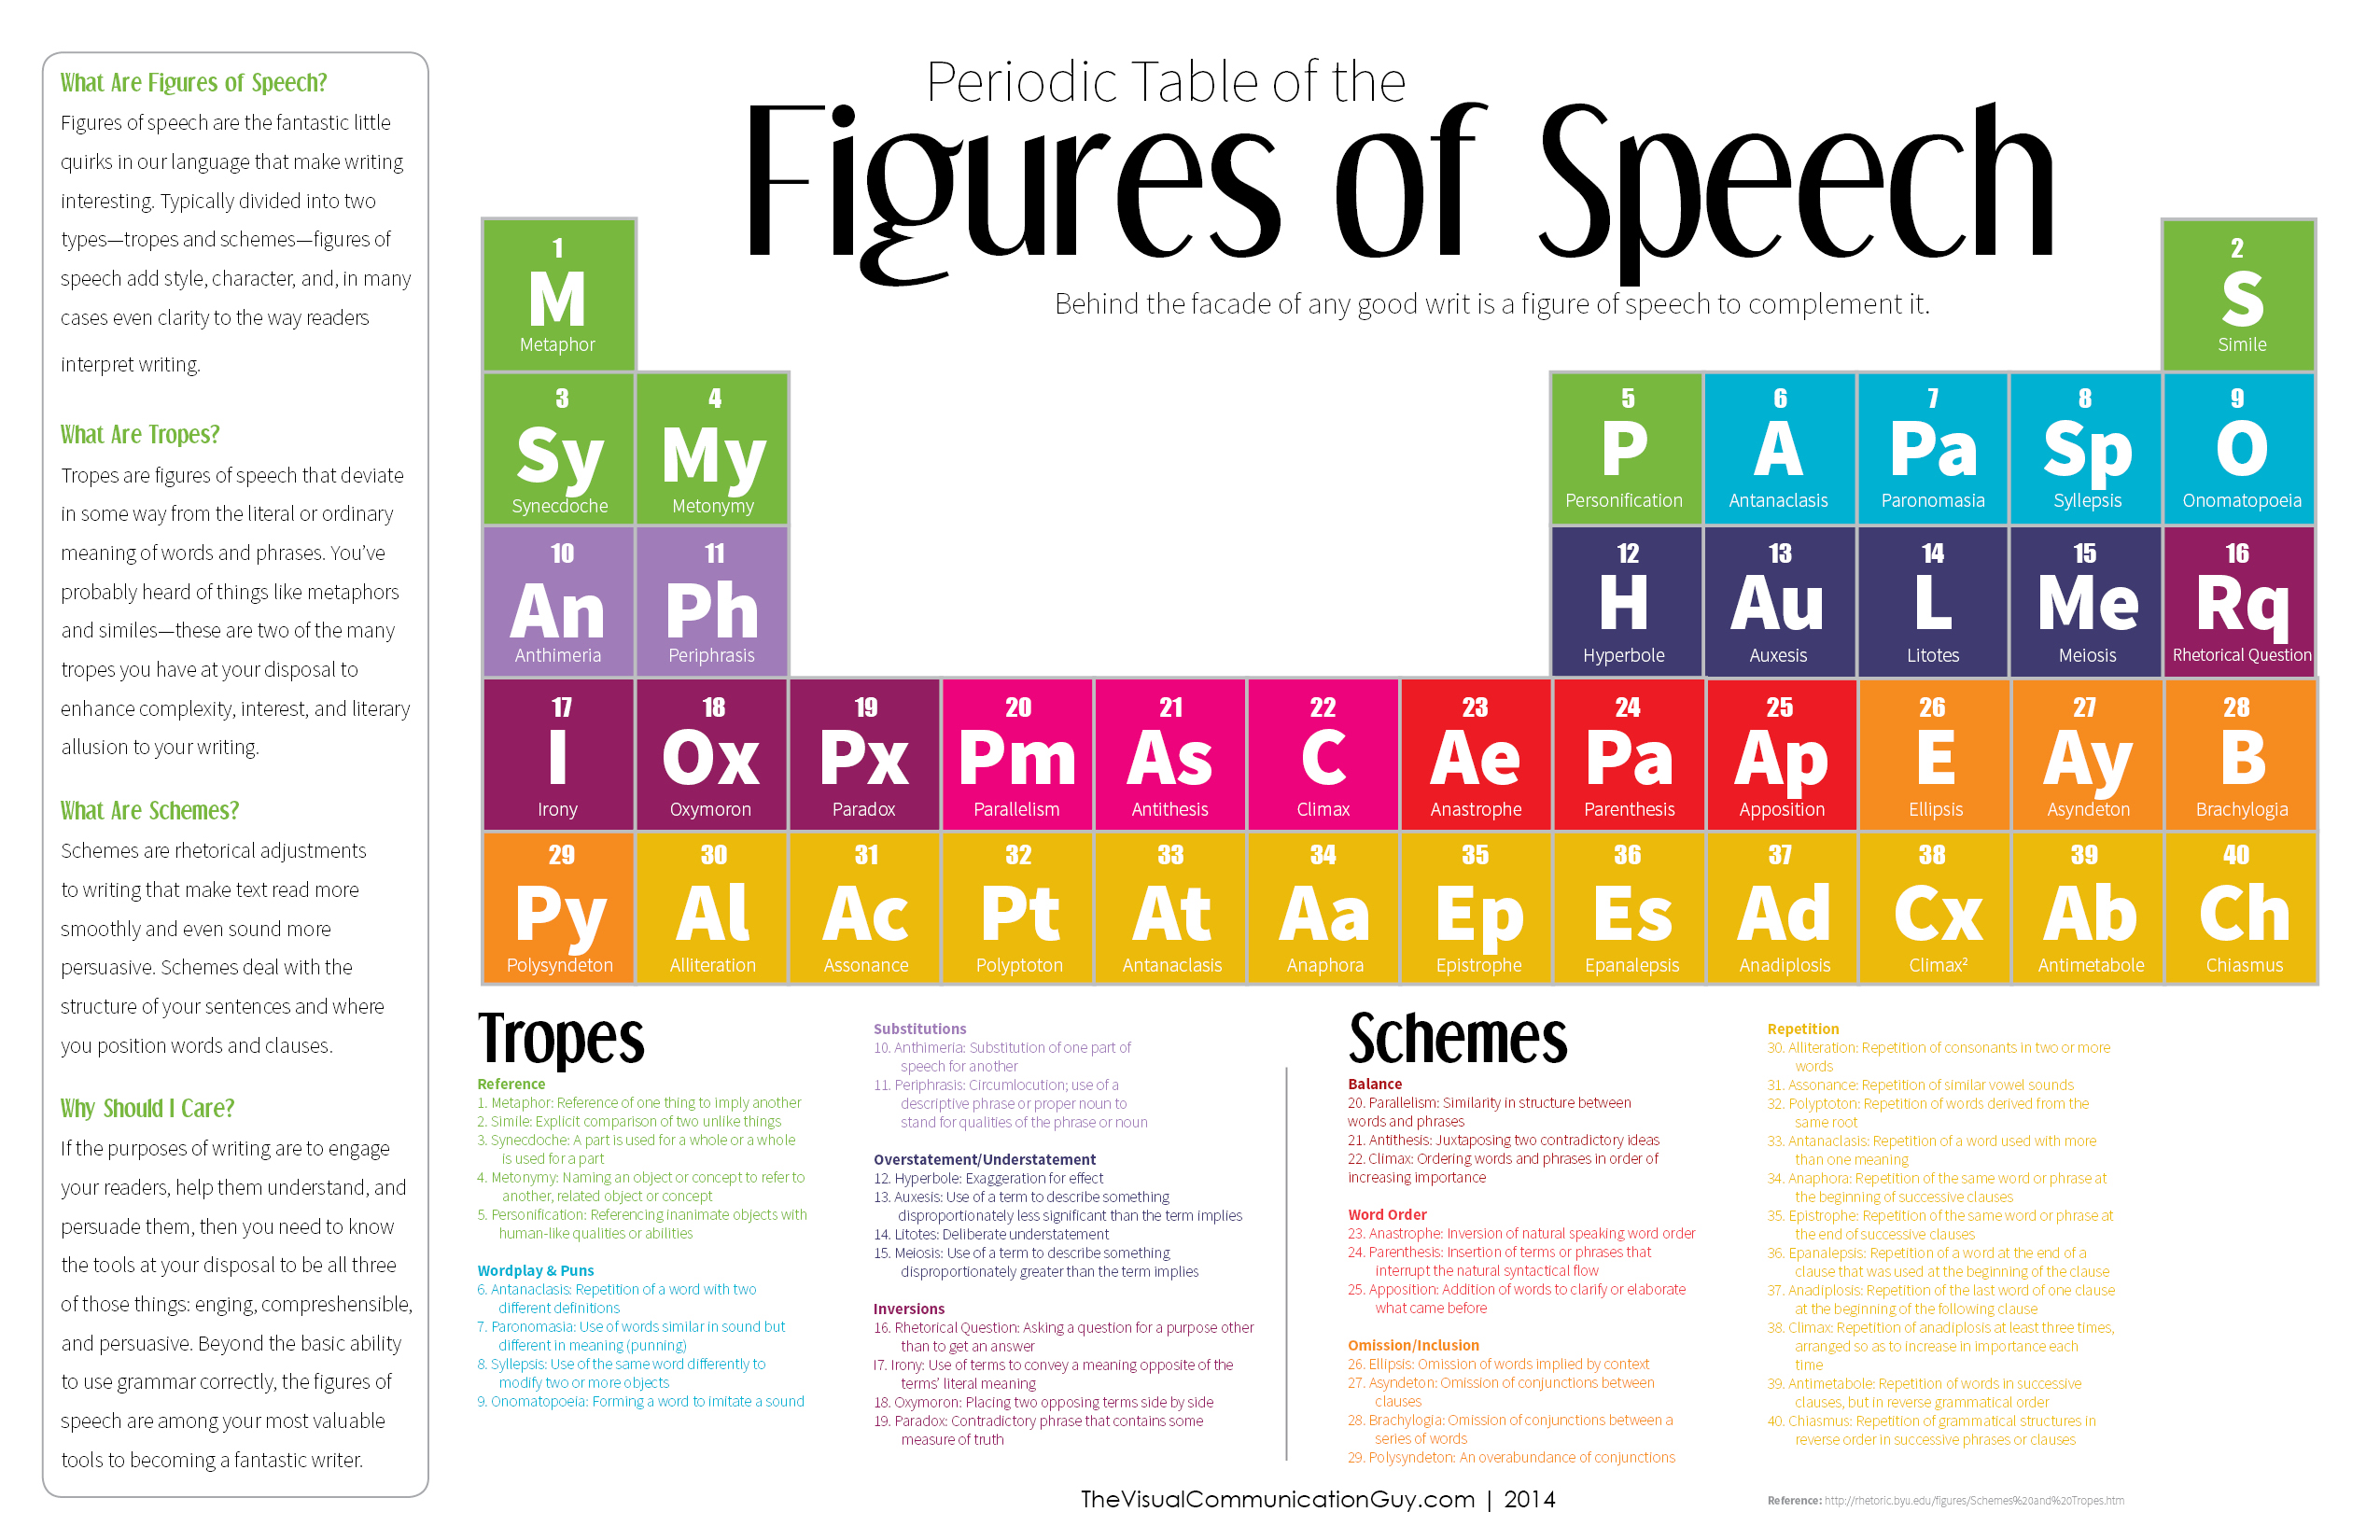 the periodic table of the figures of speech ways to improve  periodic table of the figures of speech